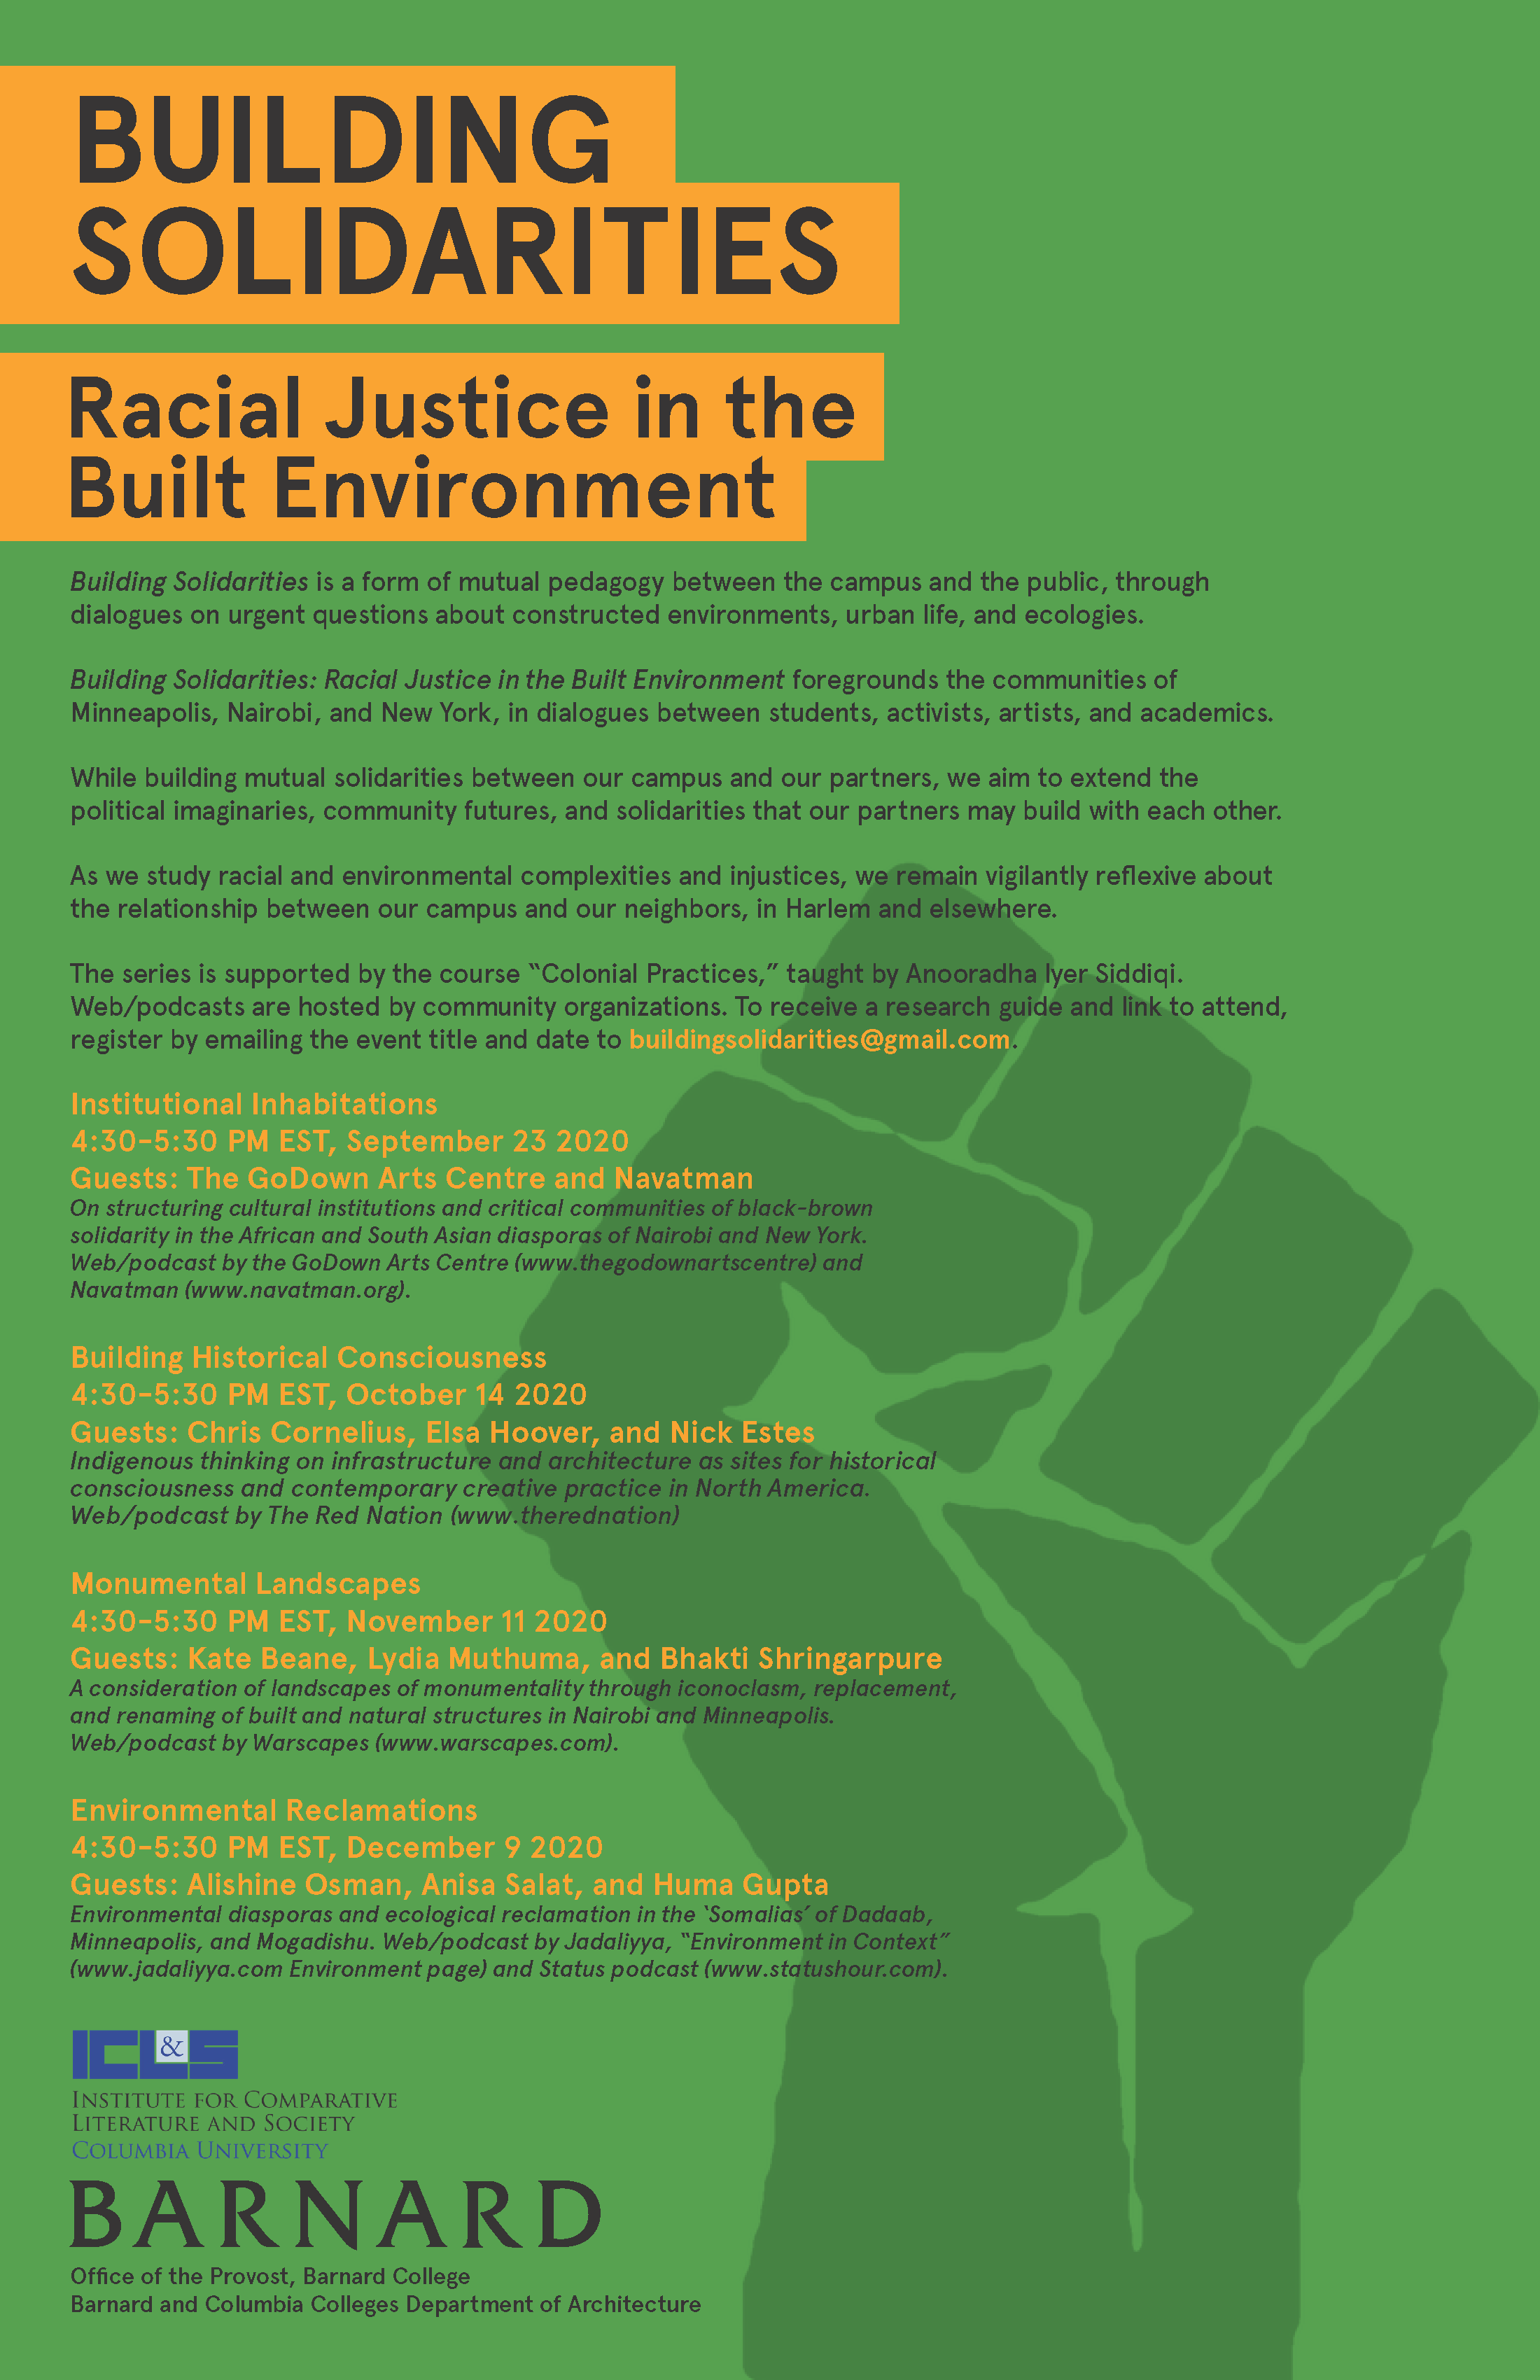 Buildings Solidarities event series flyer